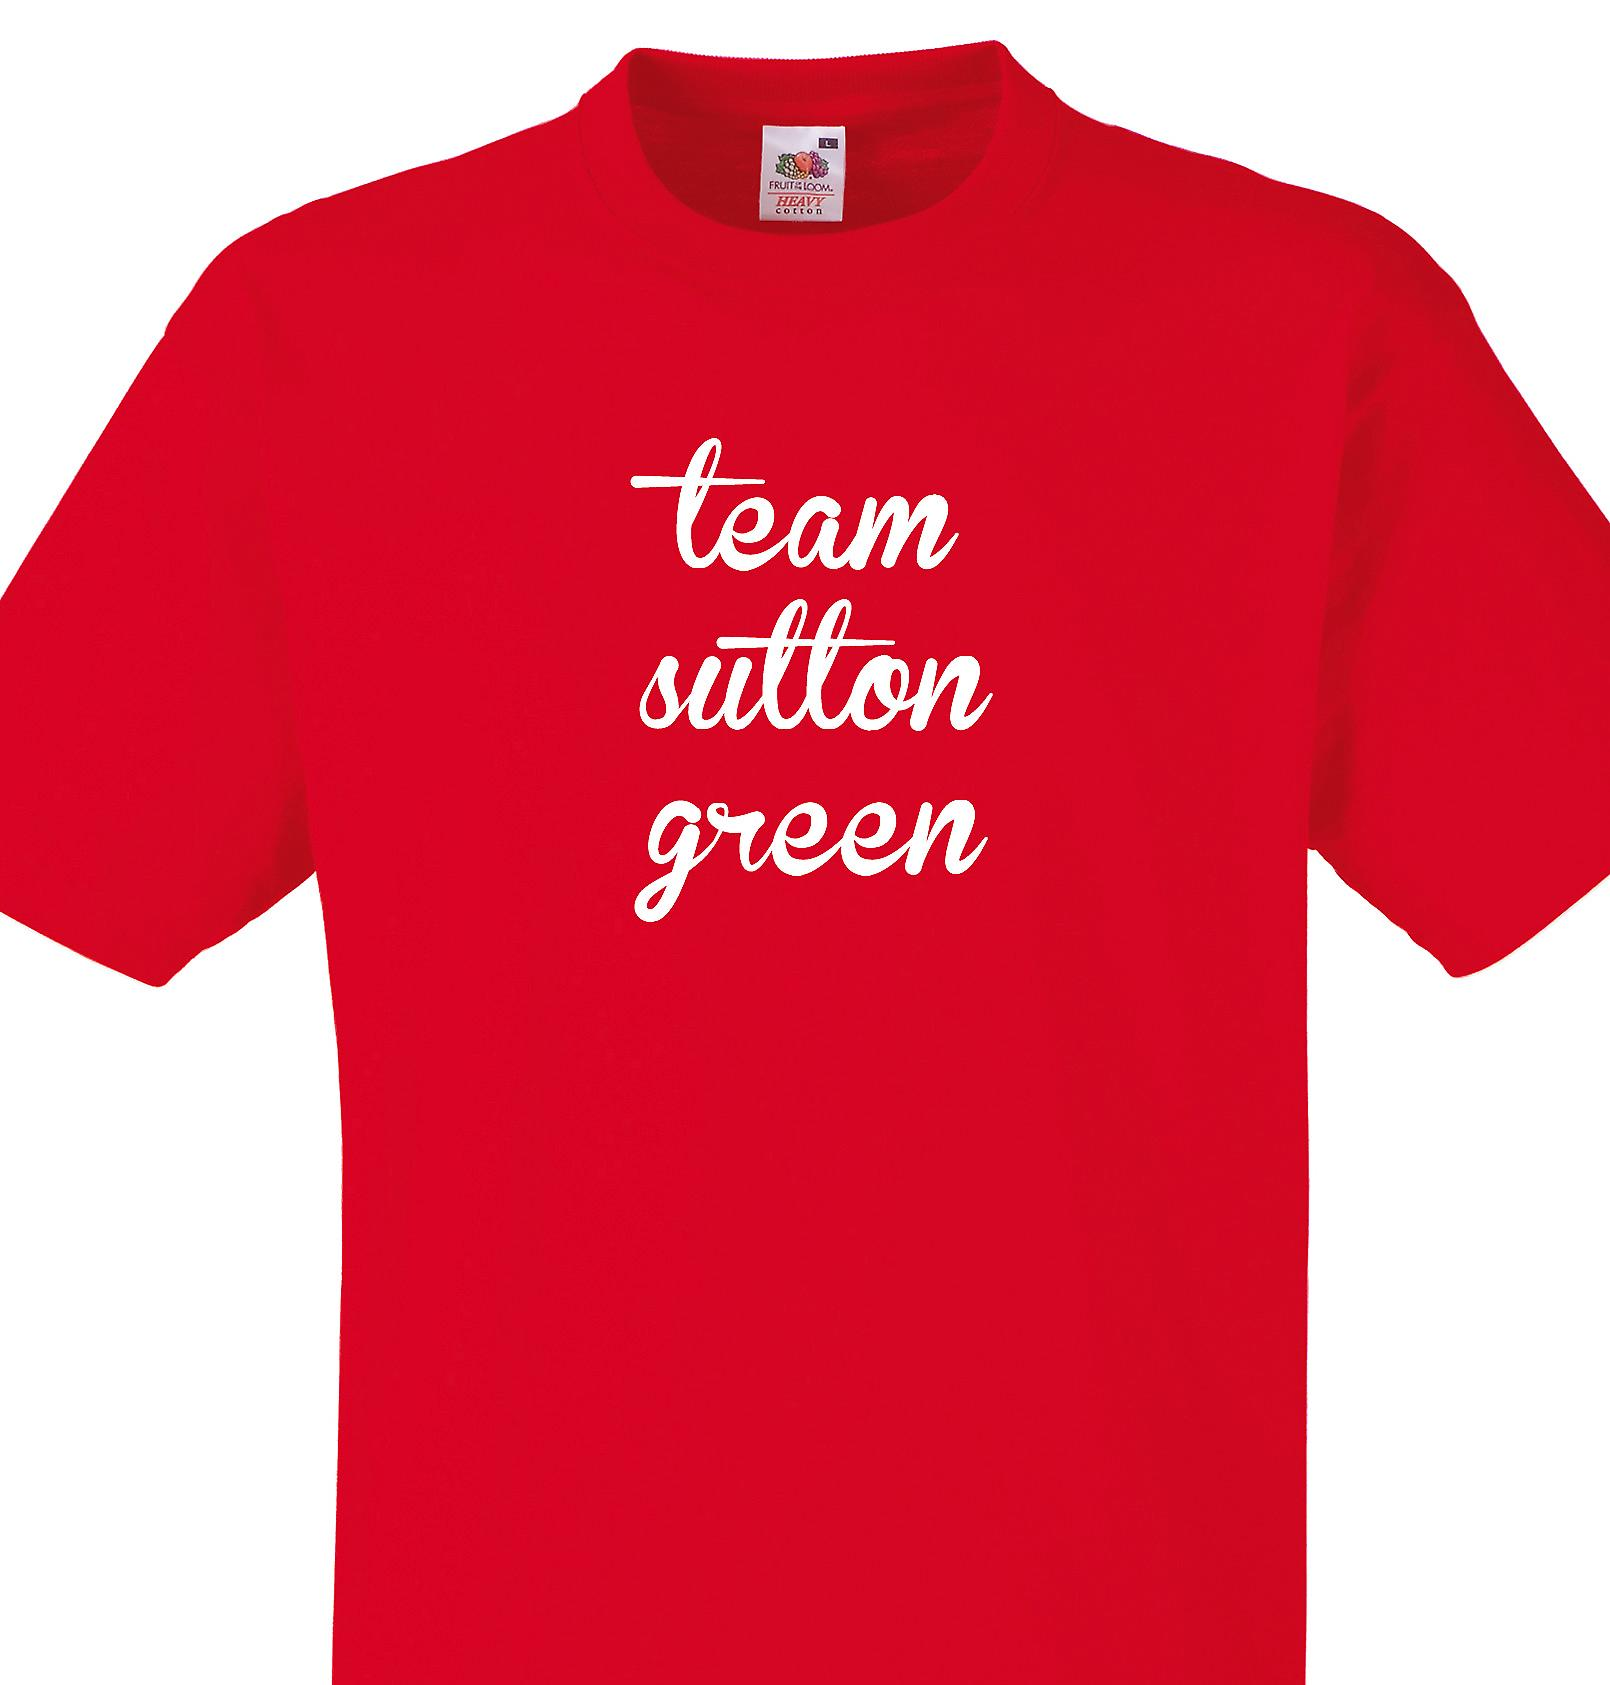 Team Sutton green Red T shirt